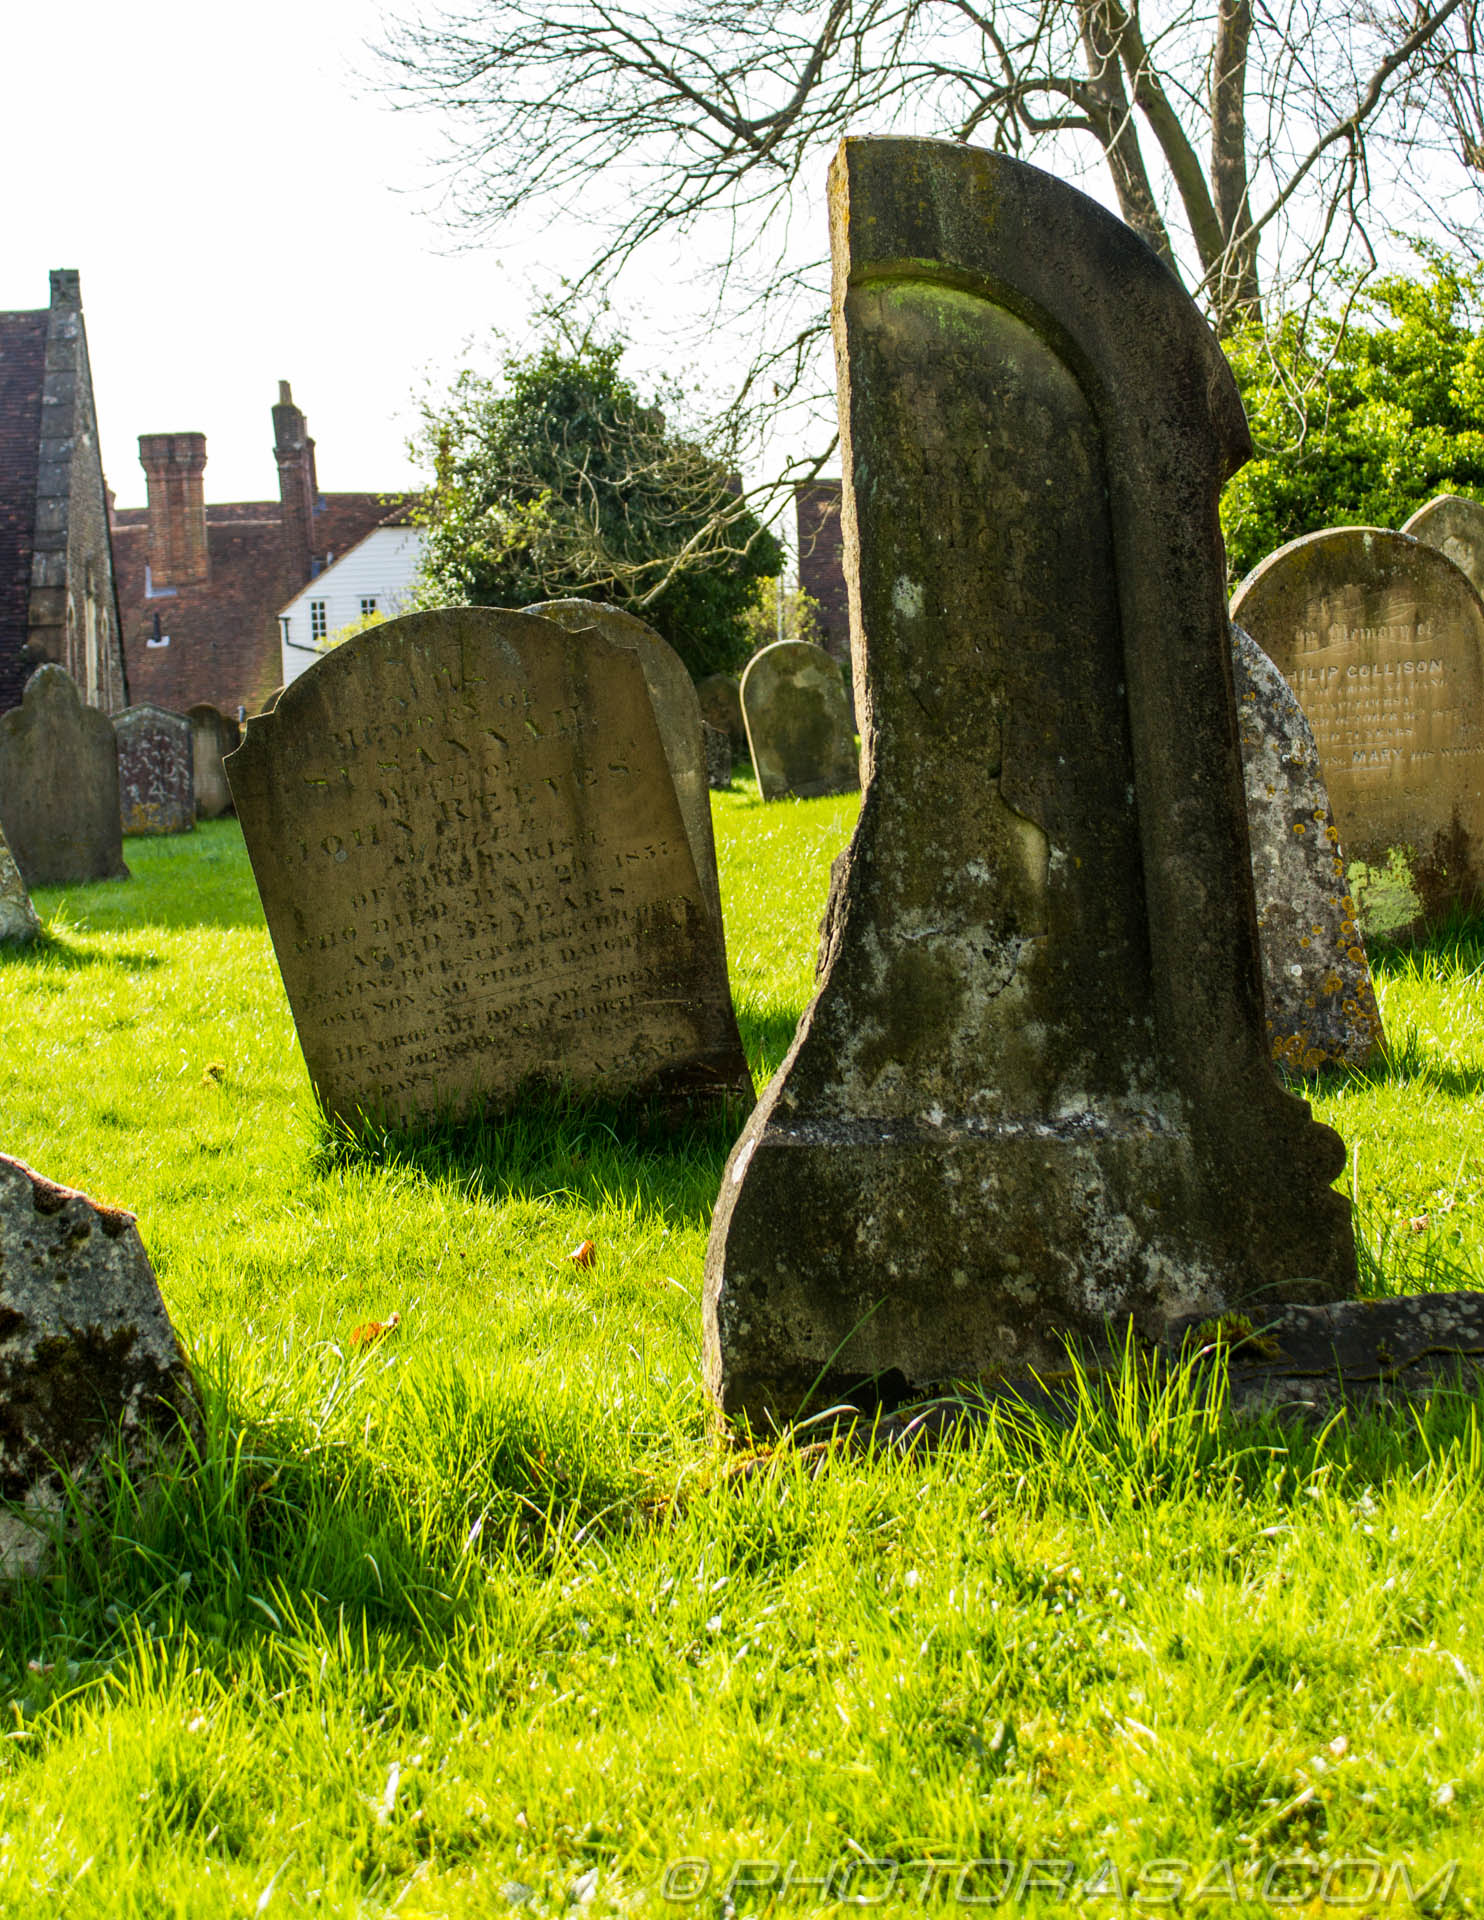 http://photorasa.com/saints-church-staplehurst-kent/damaged-and-split-stone-grave-2/